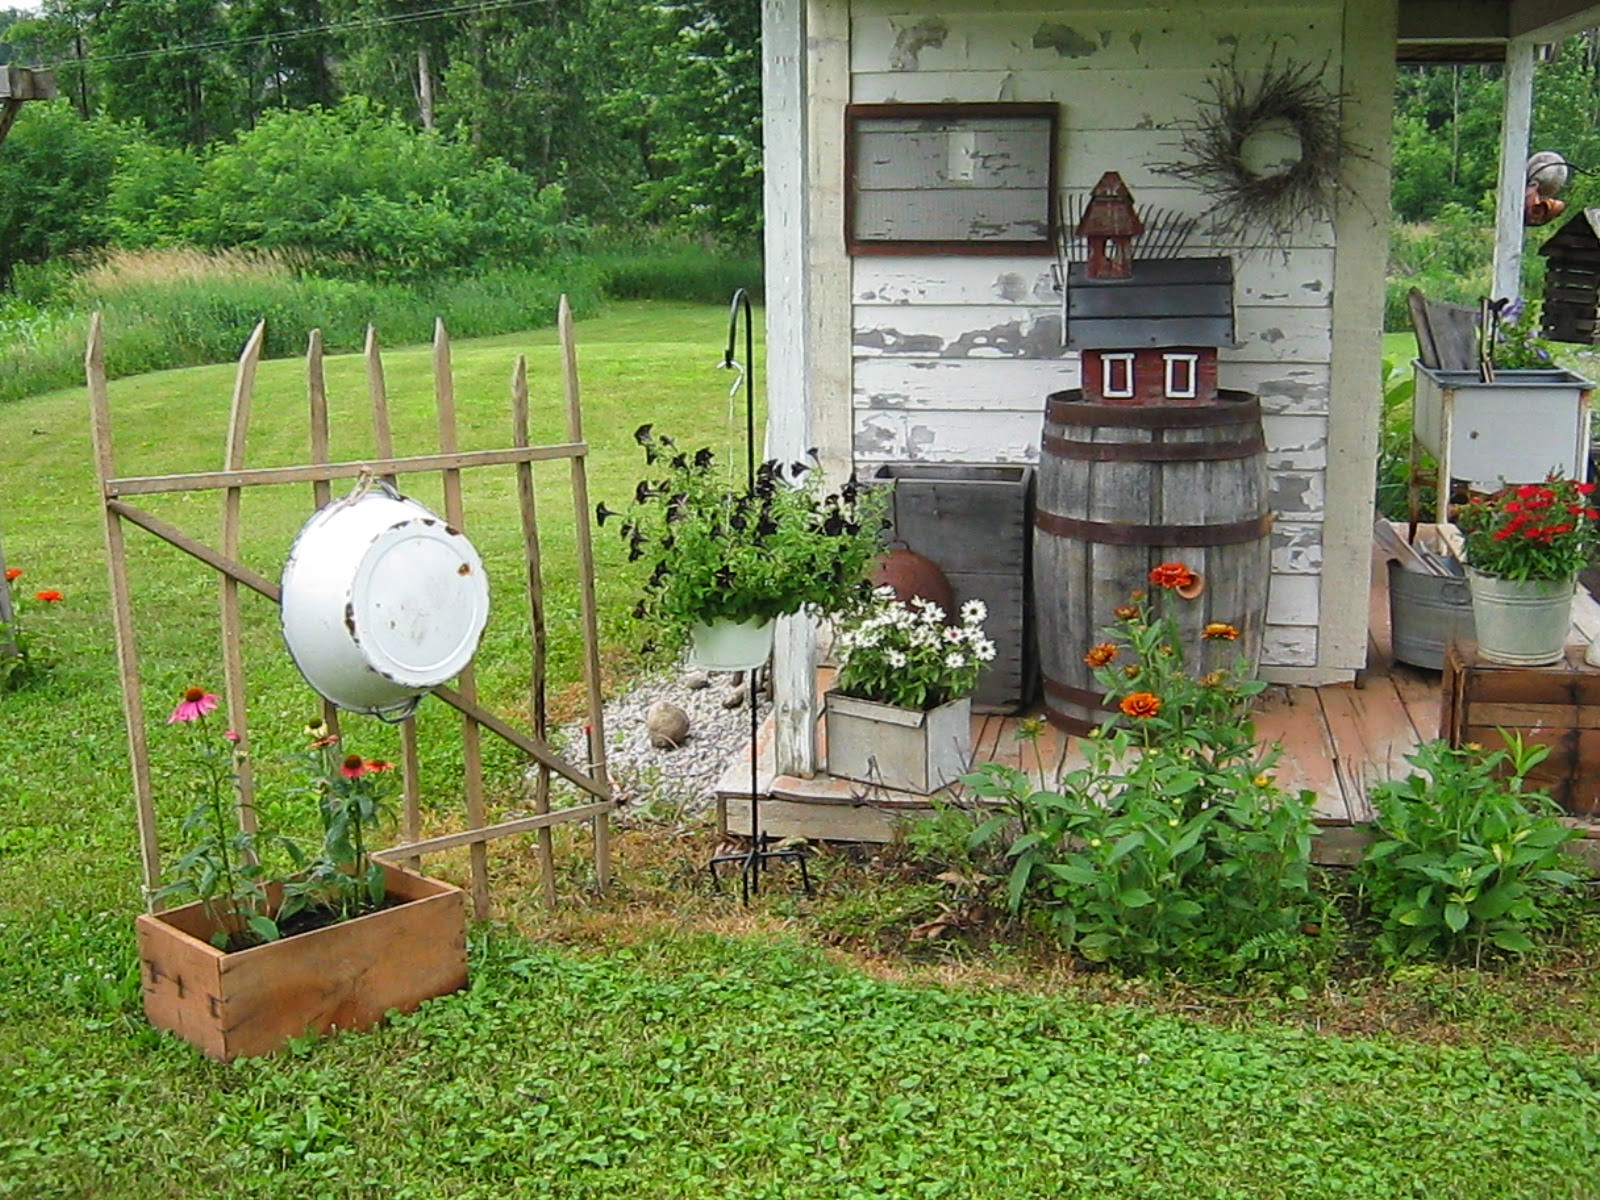 Primitive passion decorating garden shed expansion for Landscape decor